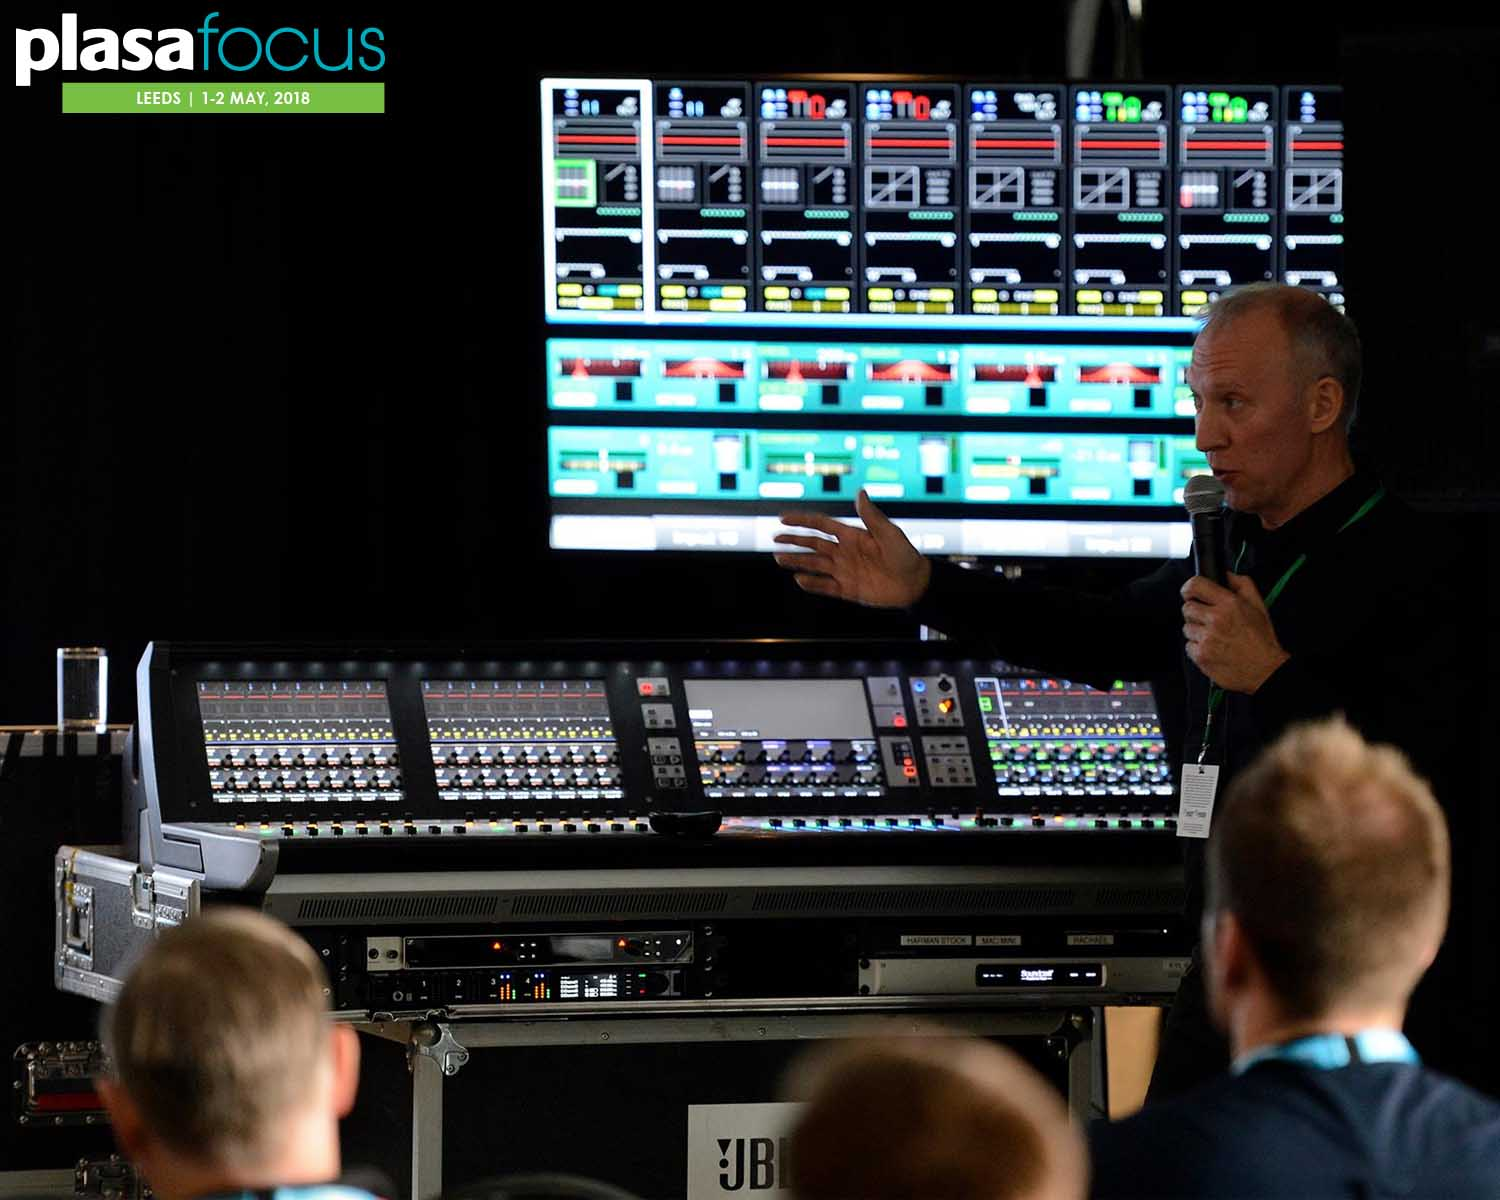 PLASA Focus Leeds elated after 10th birthday celebrations